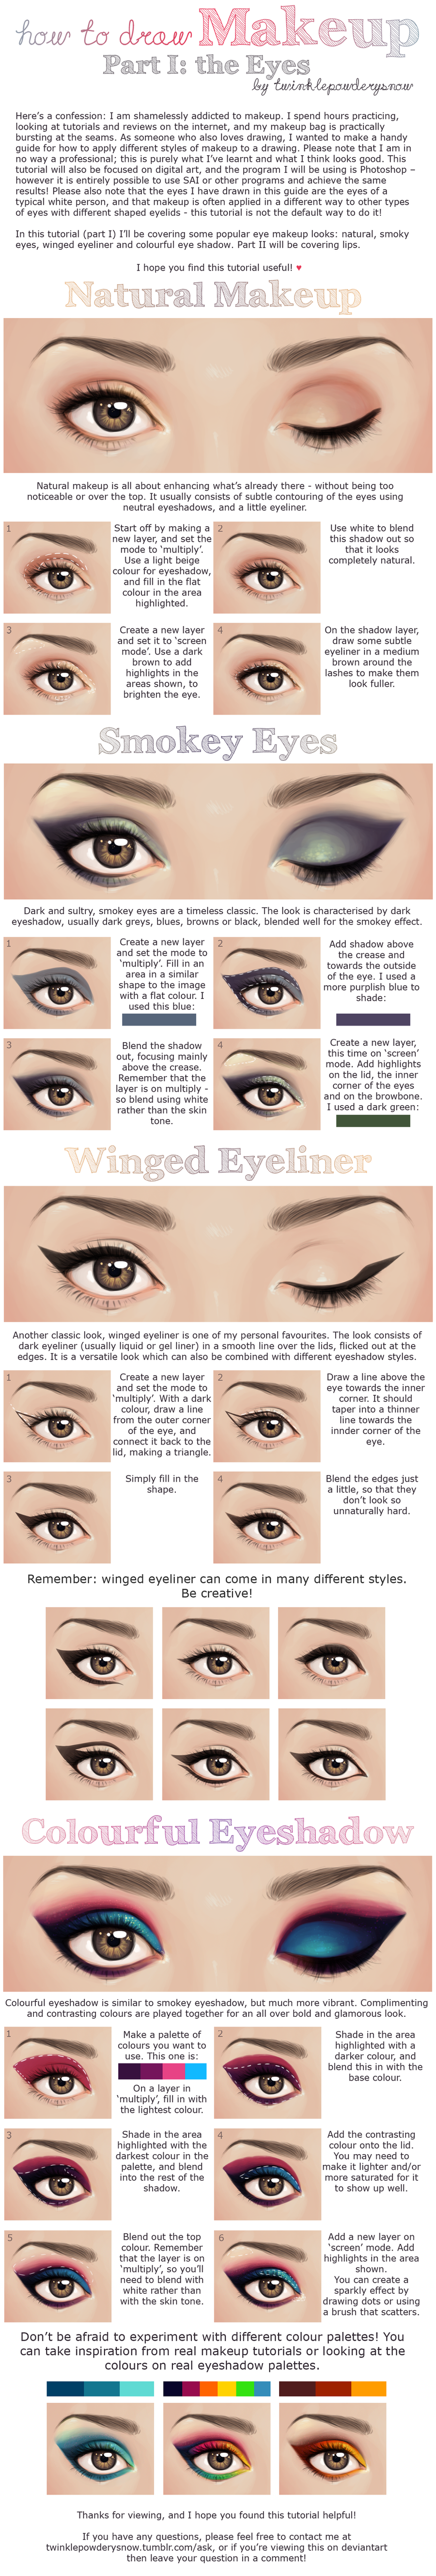 How to Draw Makeup - Part I: Eyes by TwinklePowderySnow